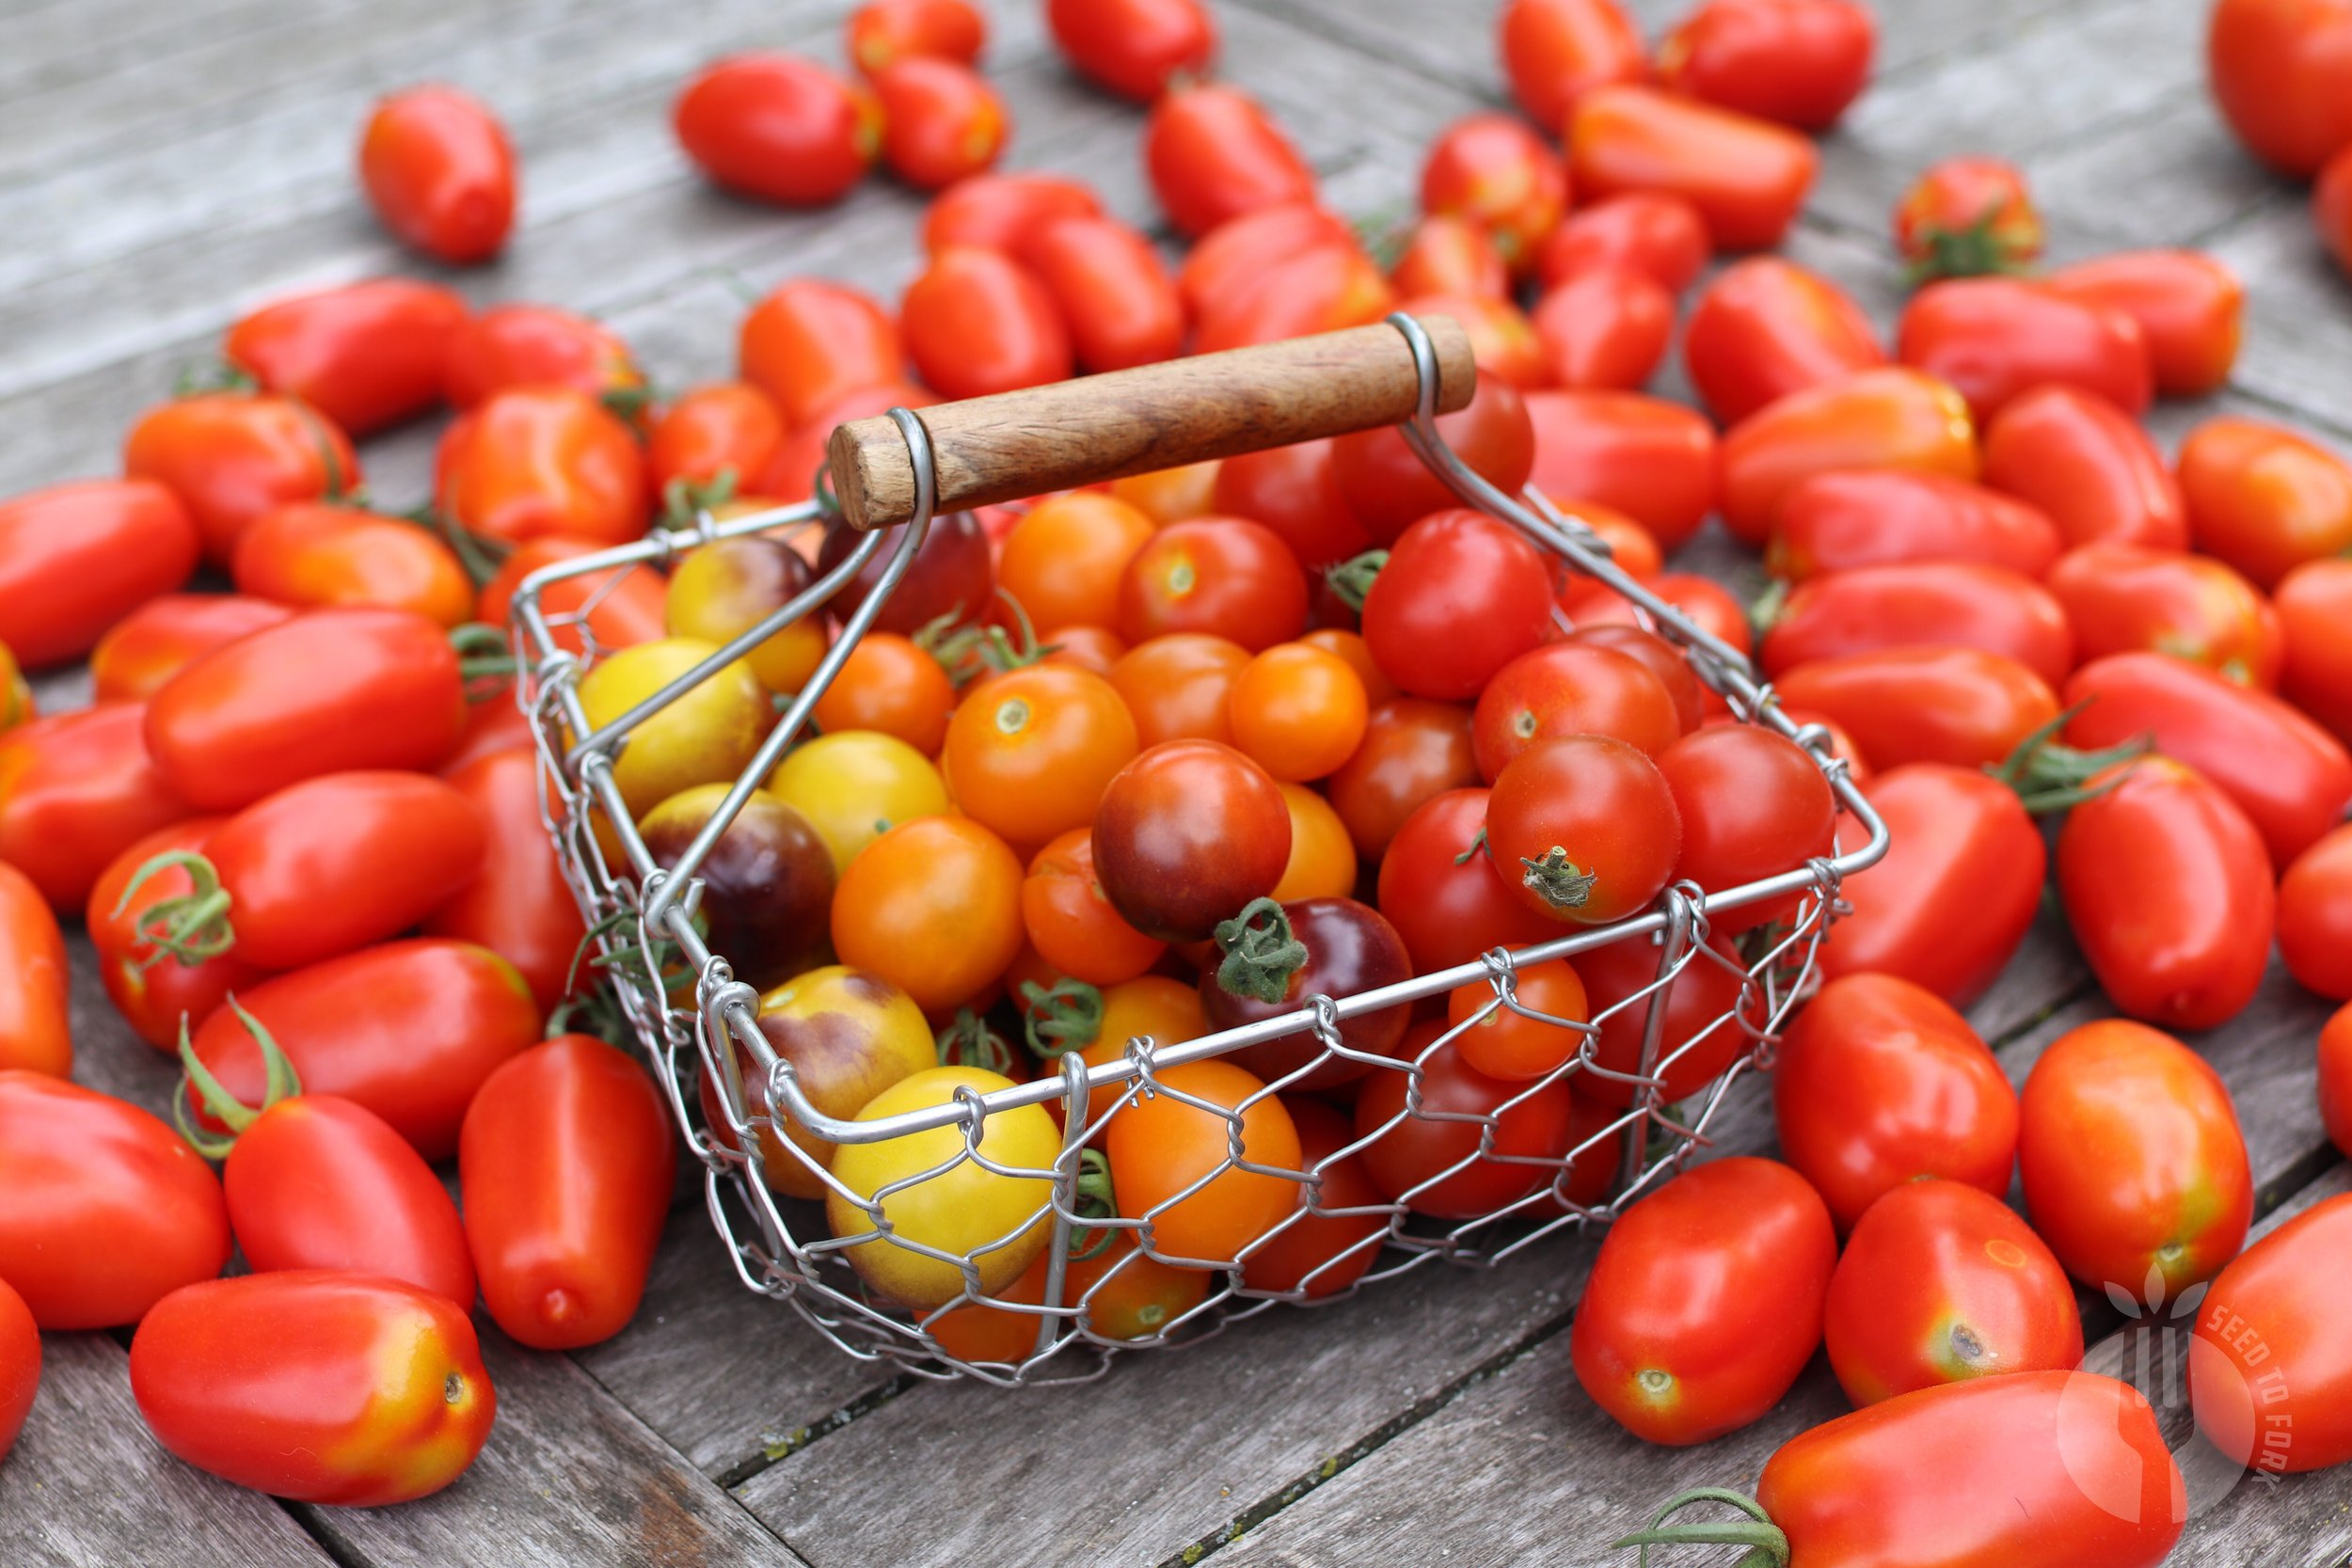 On the upside has been the gained knowledge that smaller tomatoes who ripen faster on the vine don't seem as susceptible to anthracnose as larger tomatoes. And the fact that it hasn't been a total loss of tomatoes despite having this disease this year.